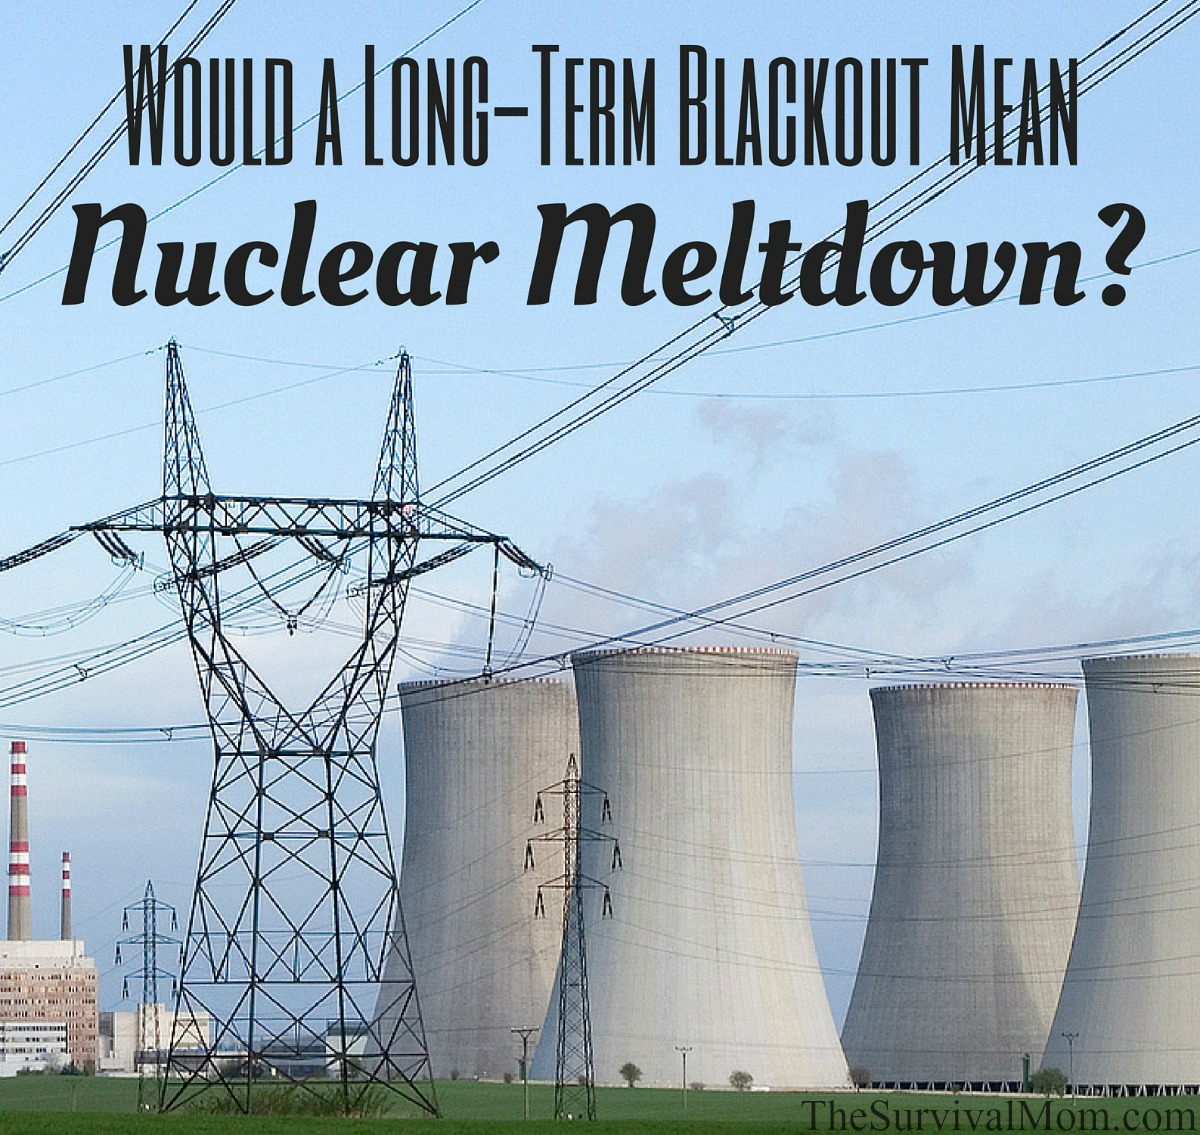 Would a Long-Term Blackout Mean Nuclear Meltdown? via The Survival Mom